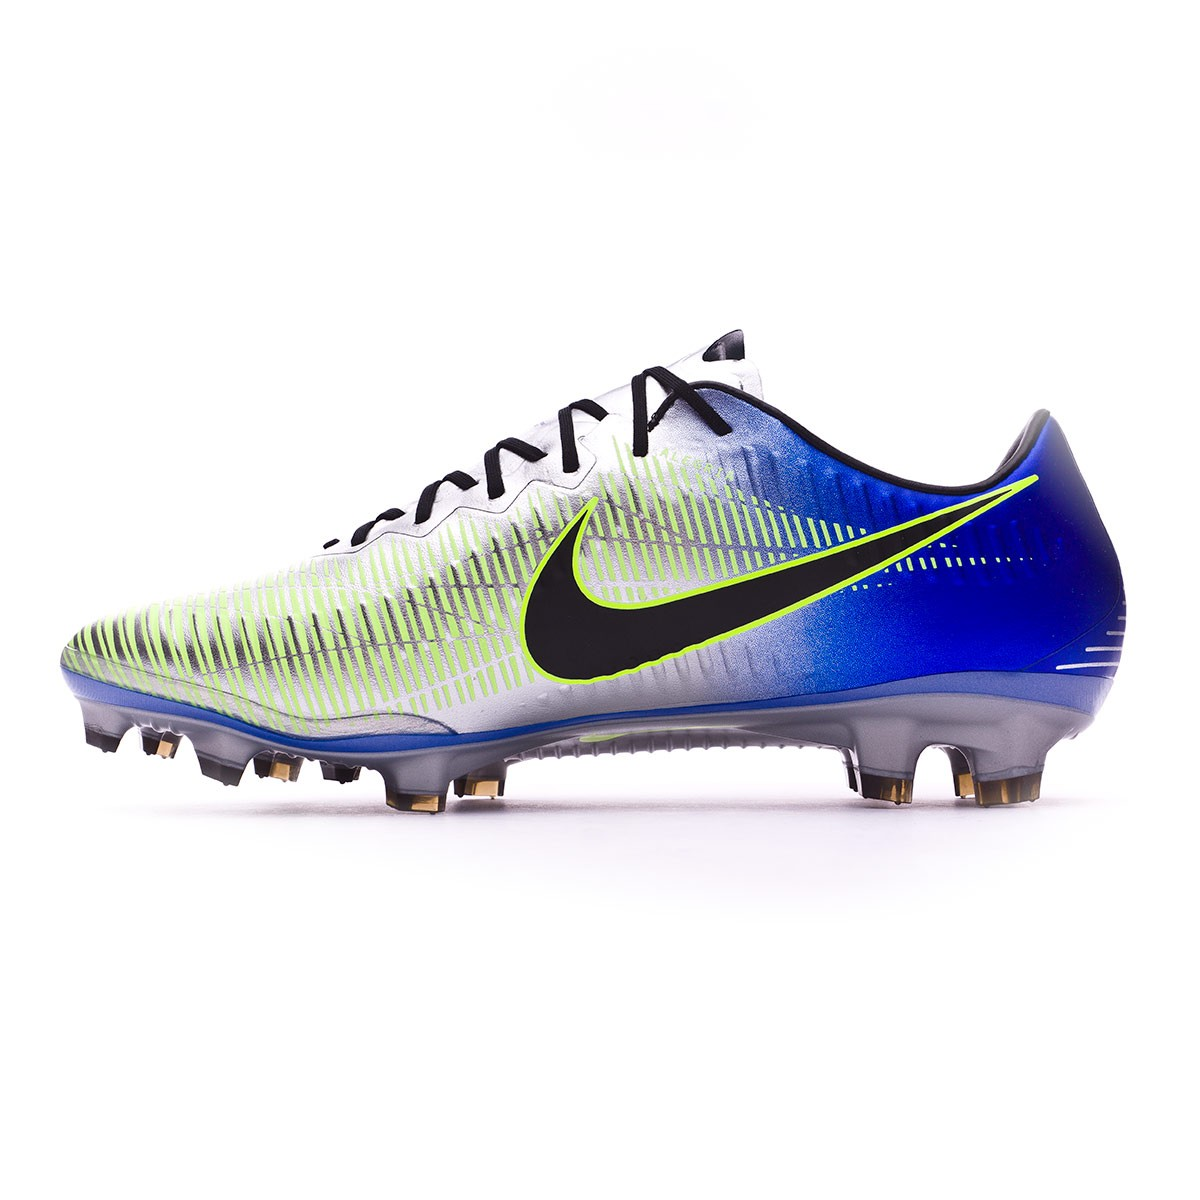 8769481dd4be Football Boots Nike Mercurial Vapor XI FG Neymar Racer  blue-Black-Chrome-Volt - Tienda de fútbol Fútbol Emotion